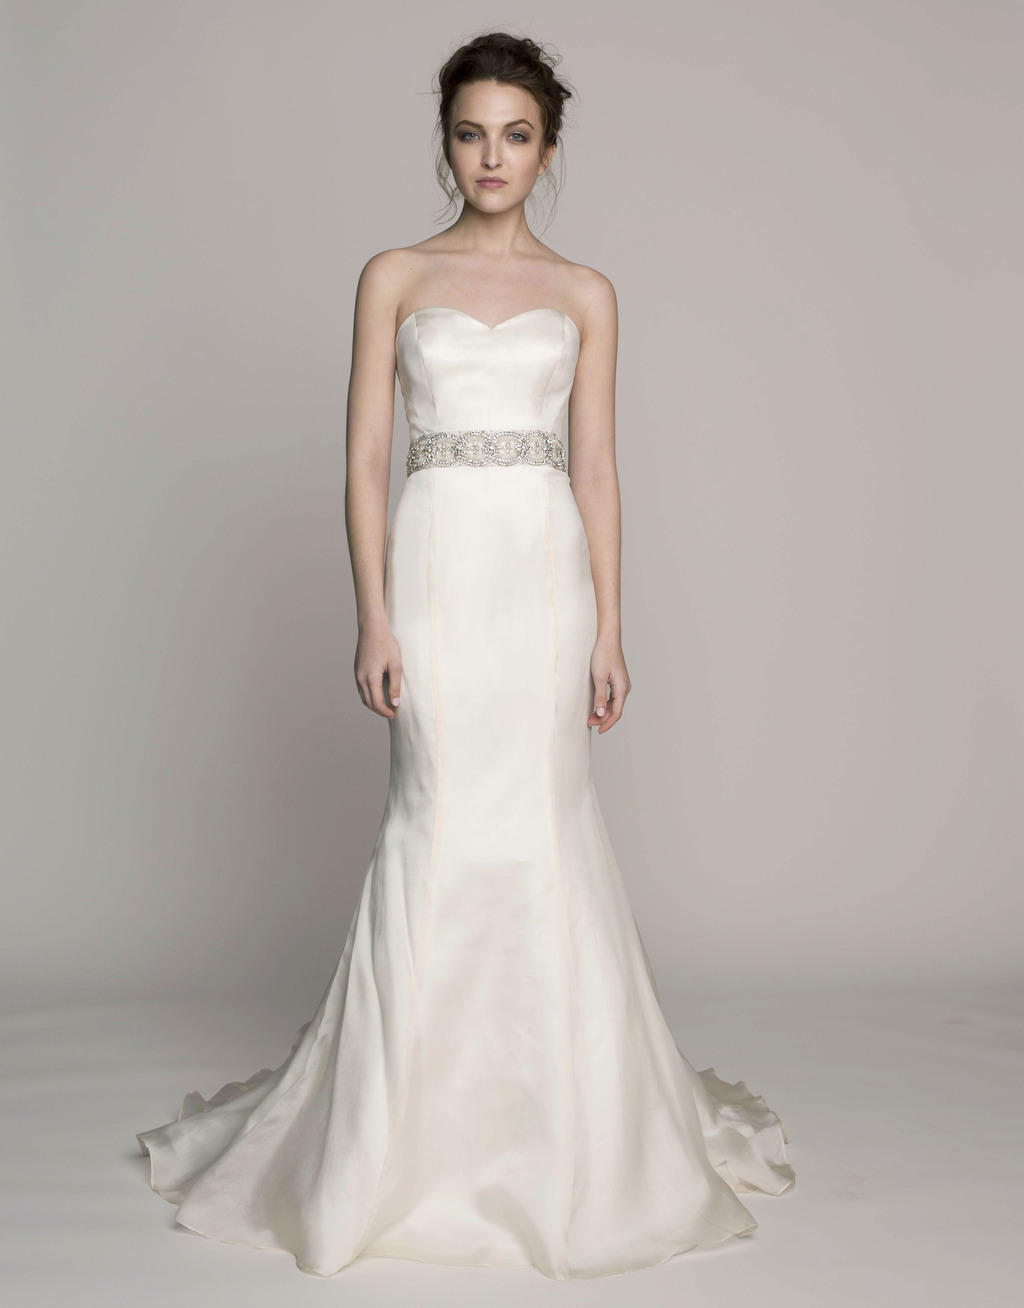 Kelly-faetanini-wedding-dress-2014-spring-bridal-gown-collection-devan-front.full